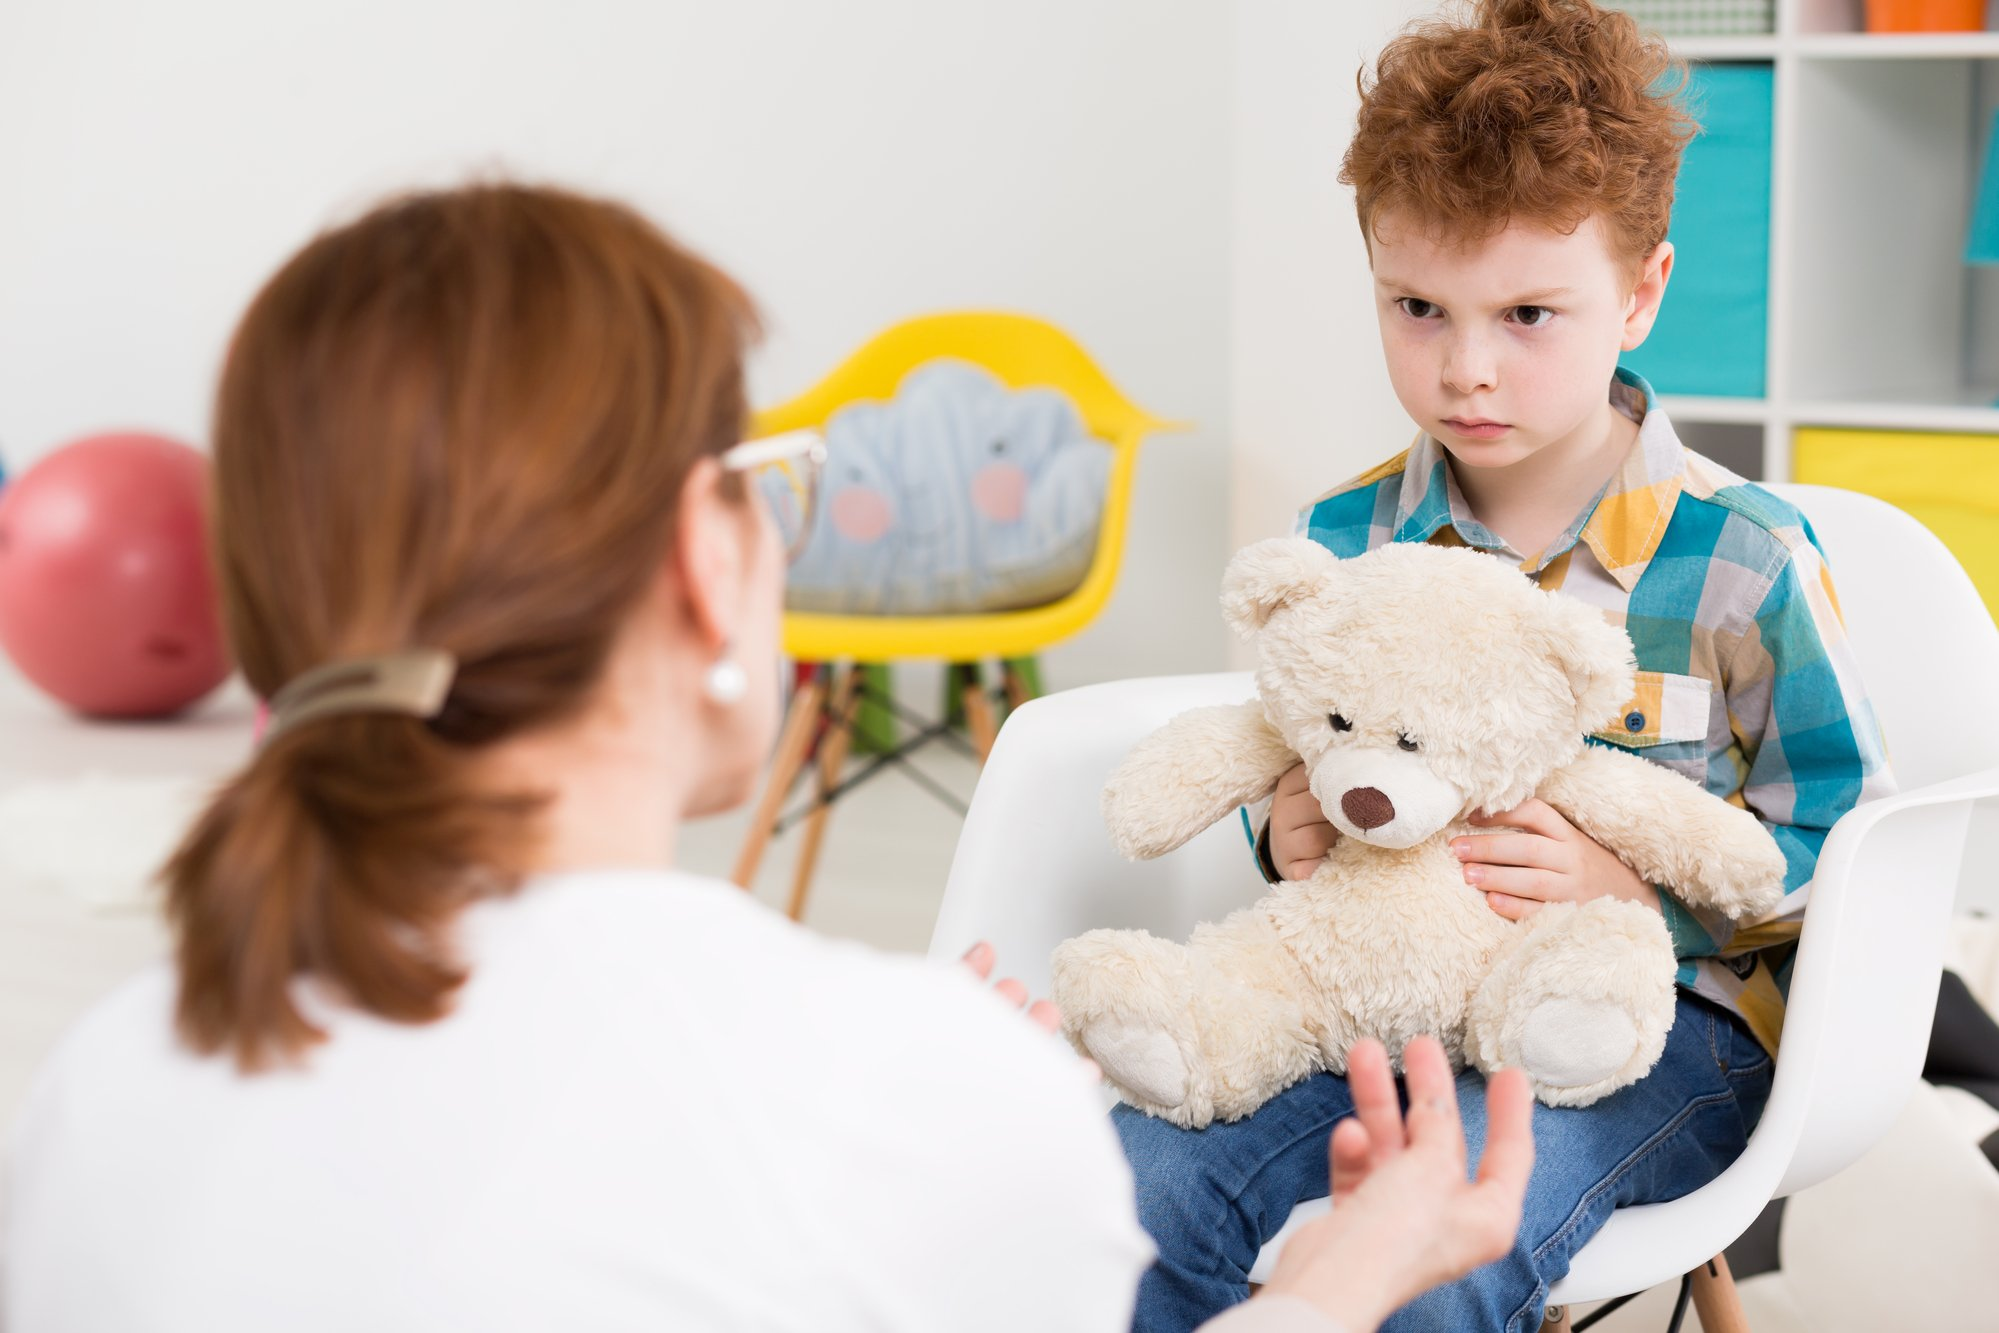 THE CUSTODY EVALUATION PROCESS: HOW TO PREPARE AND WHAT TO EXPECT